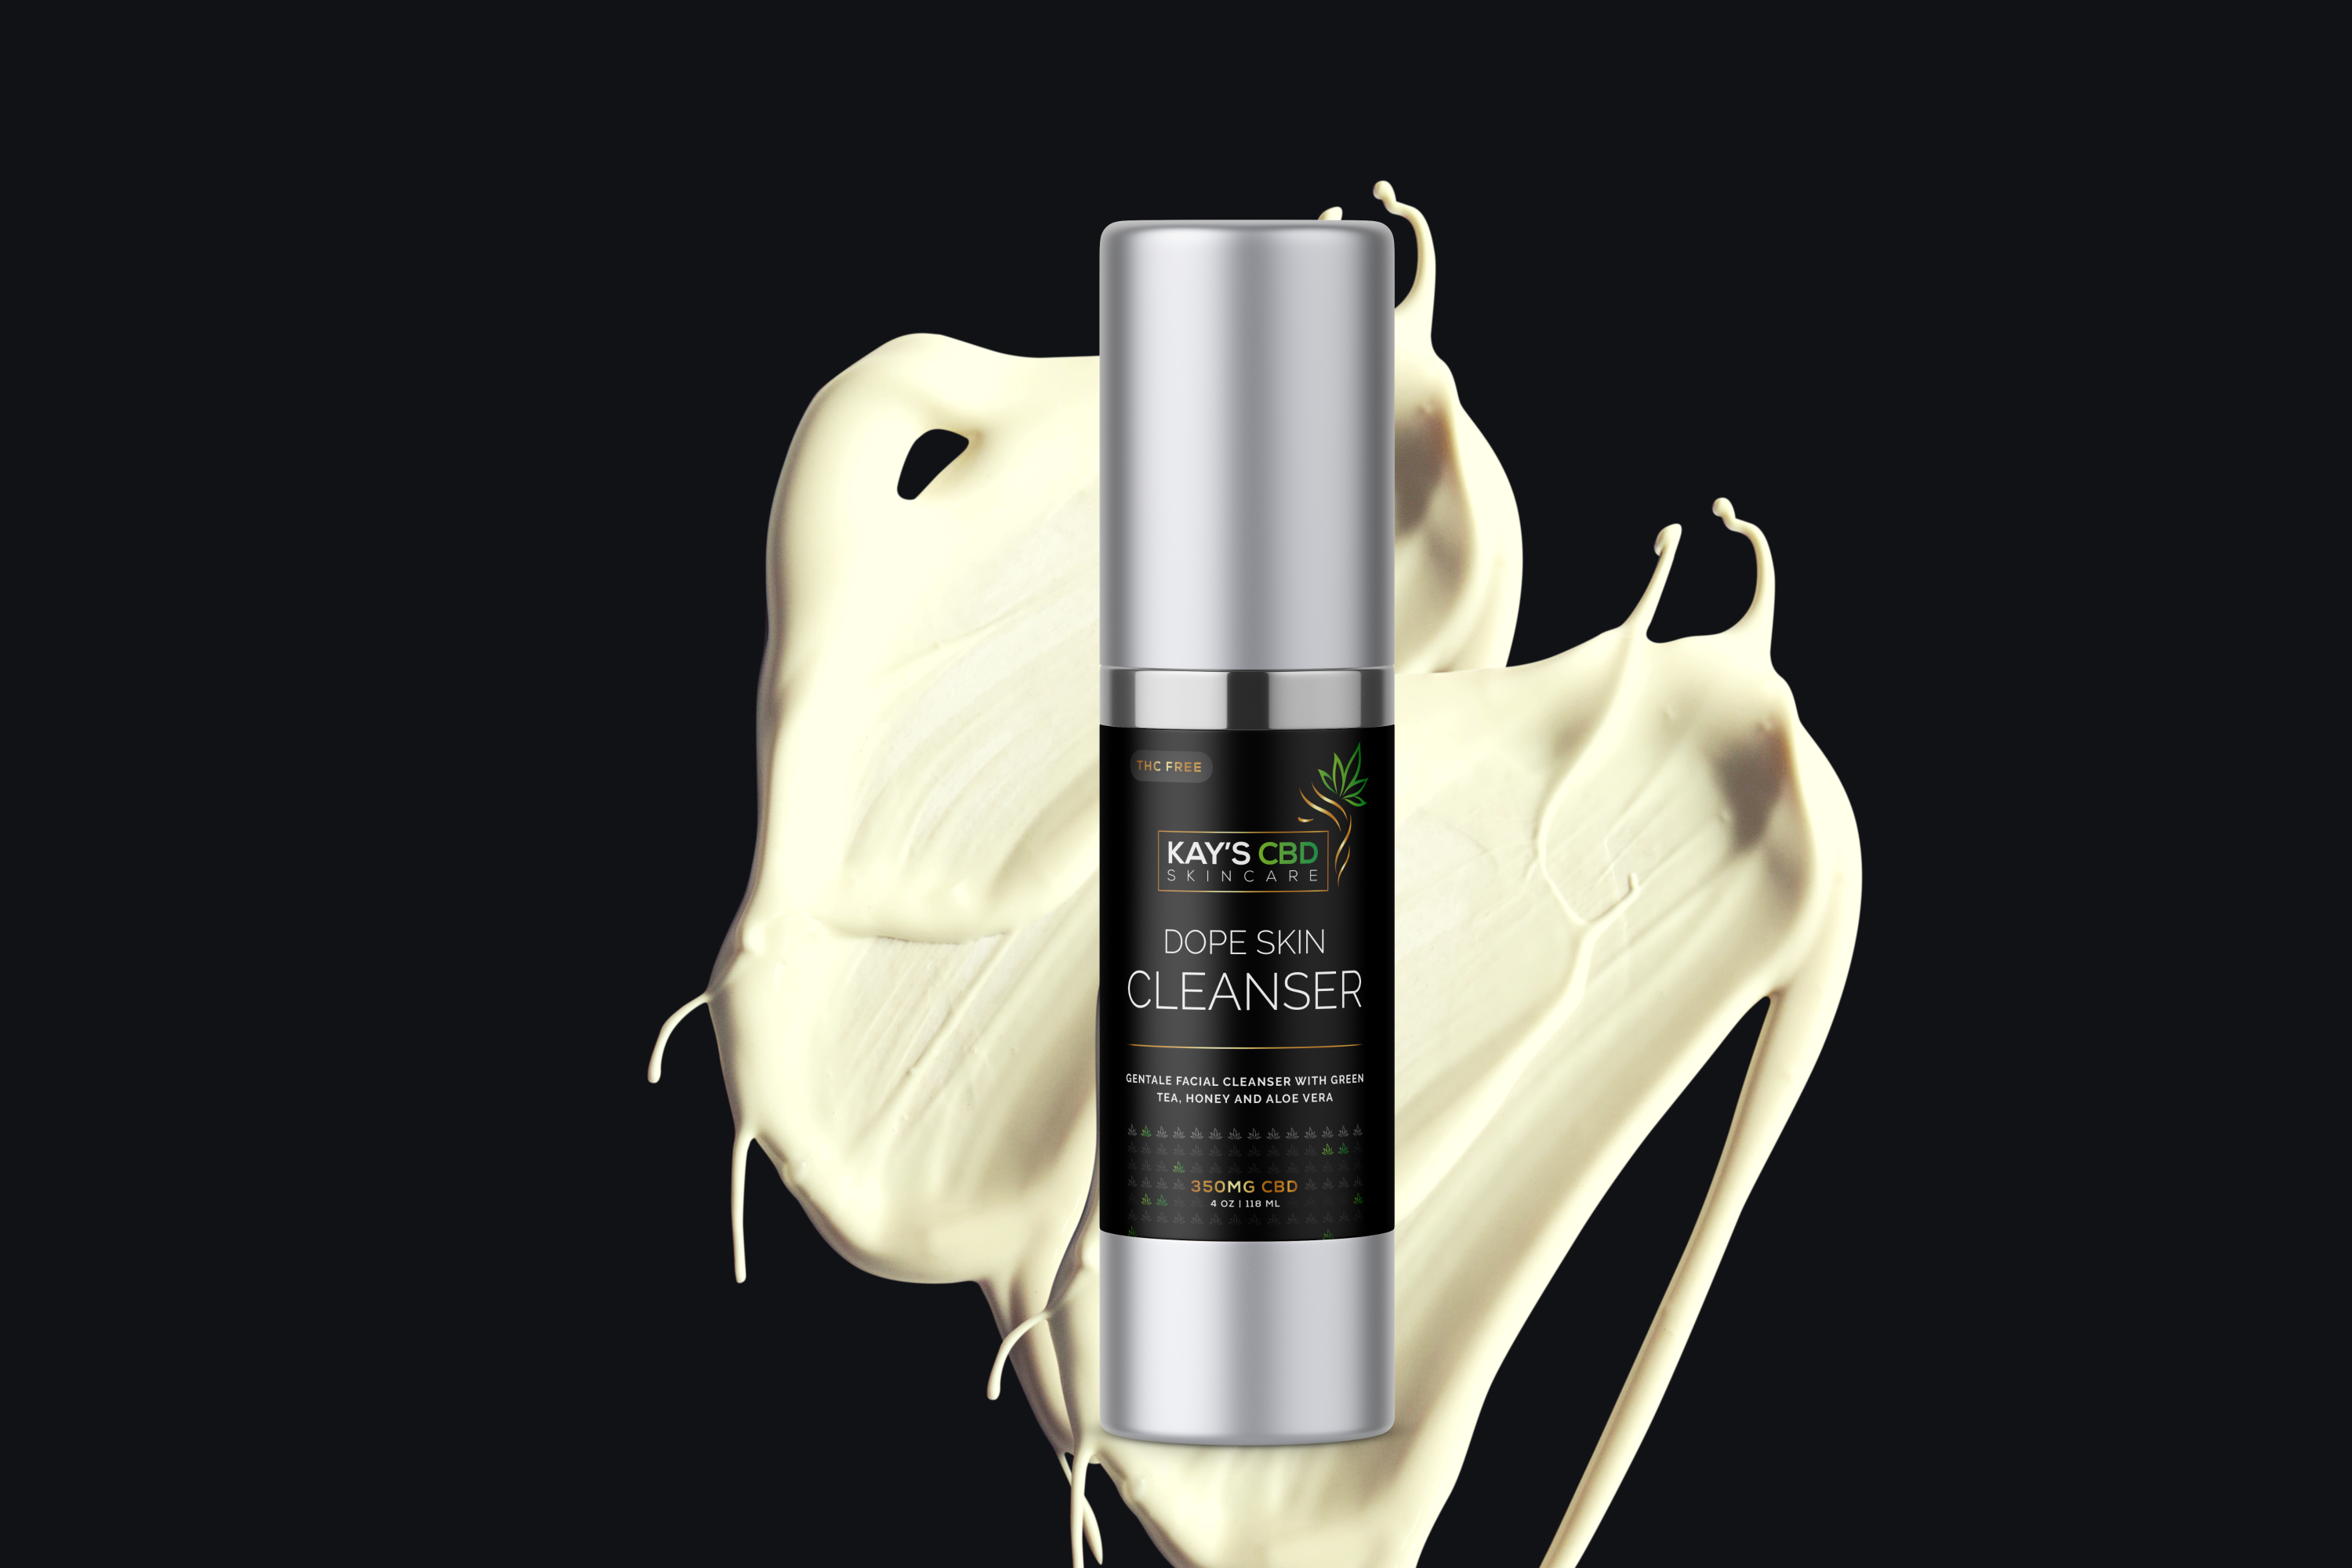 Dope Skin Cleanser Our CBD Facial Wash